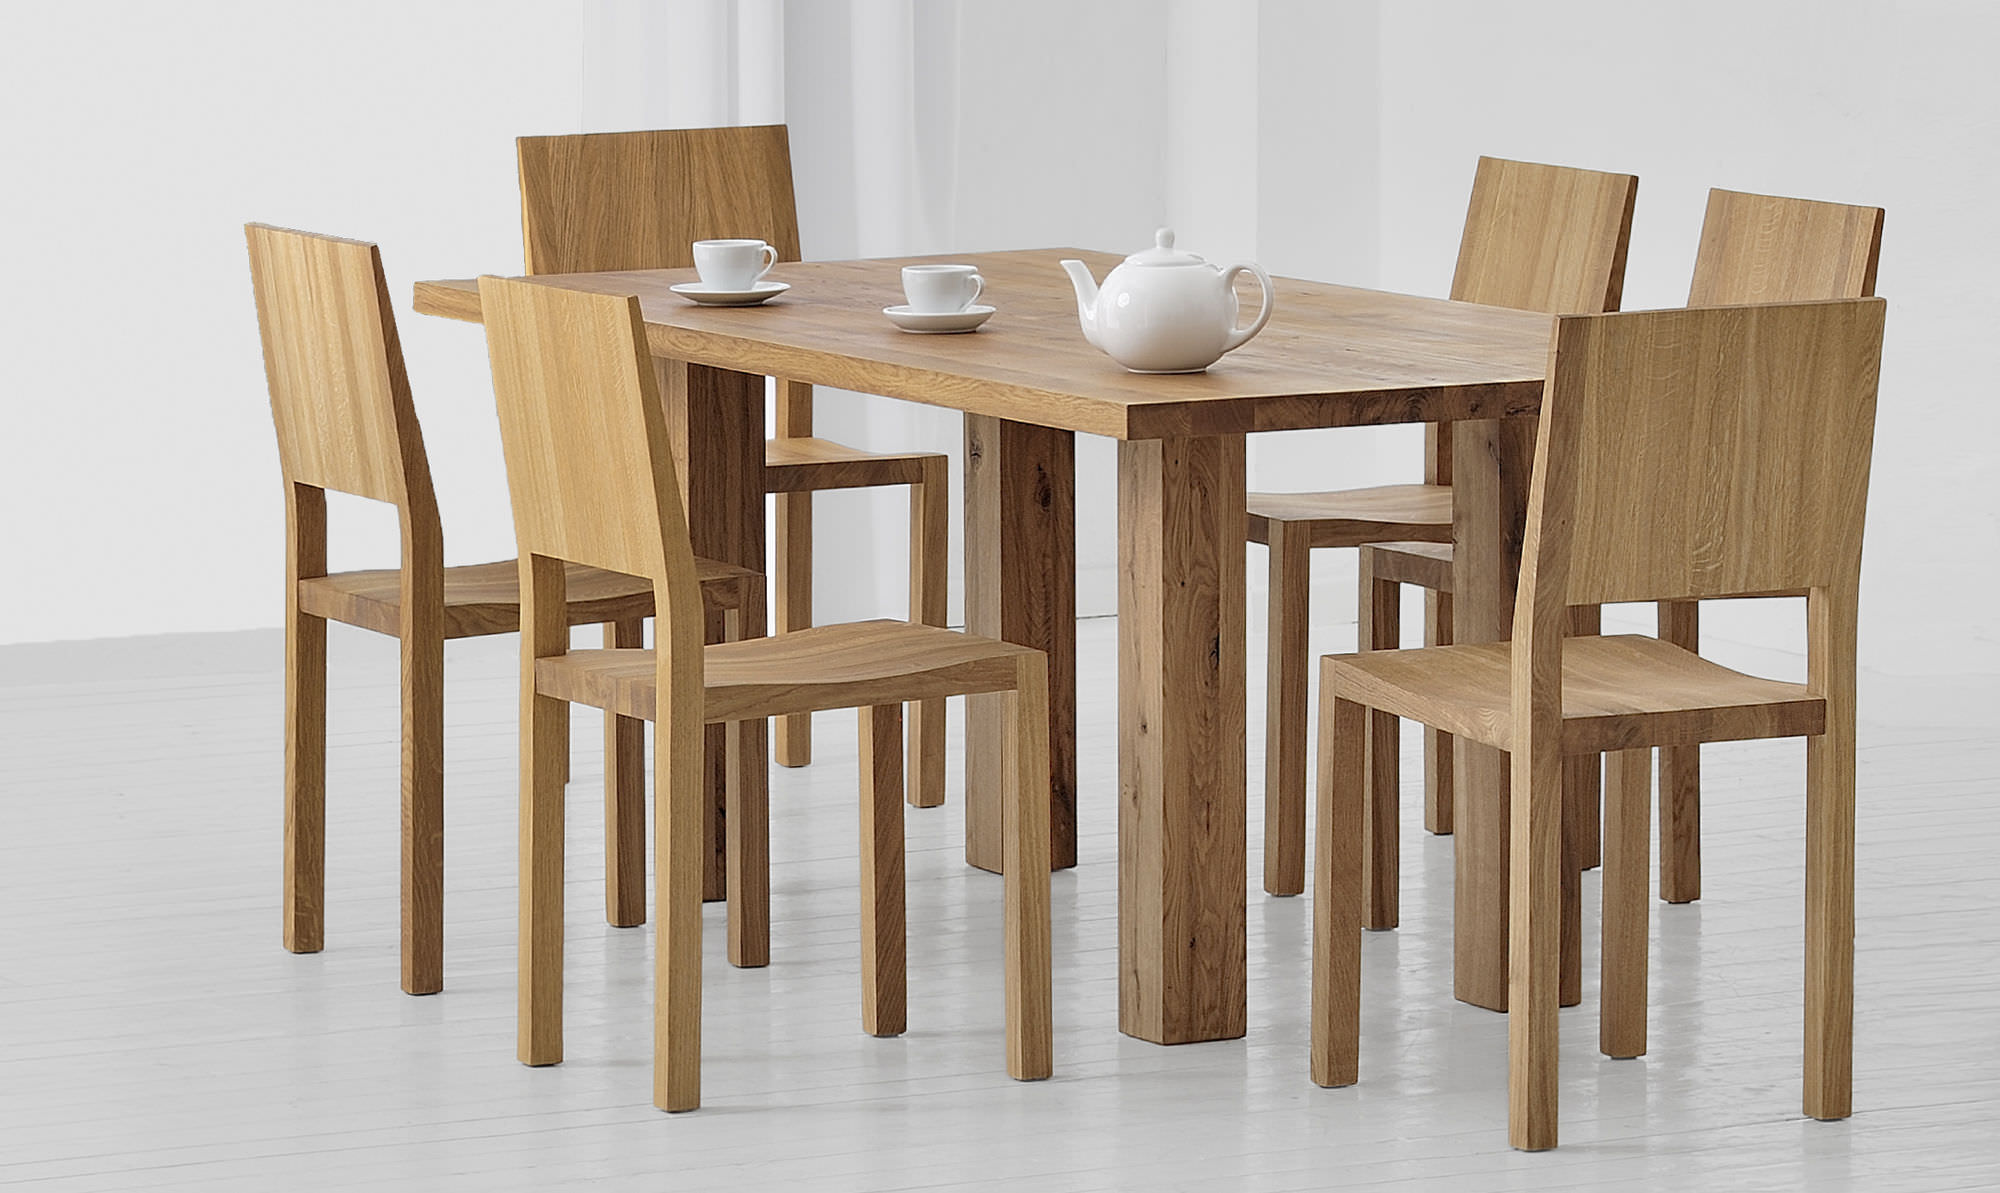 Beautiful Sillas De Comedor Modernas En Madera Pictures - Casas ...